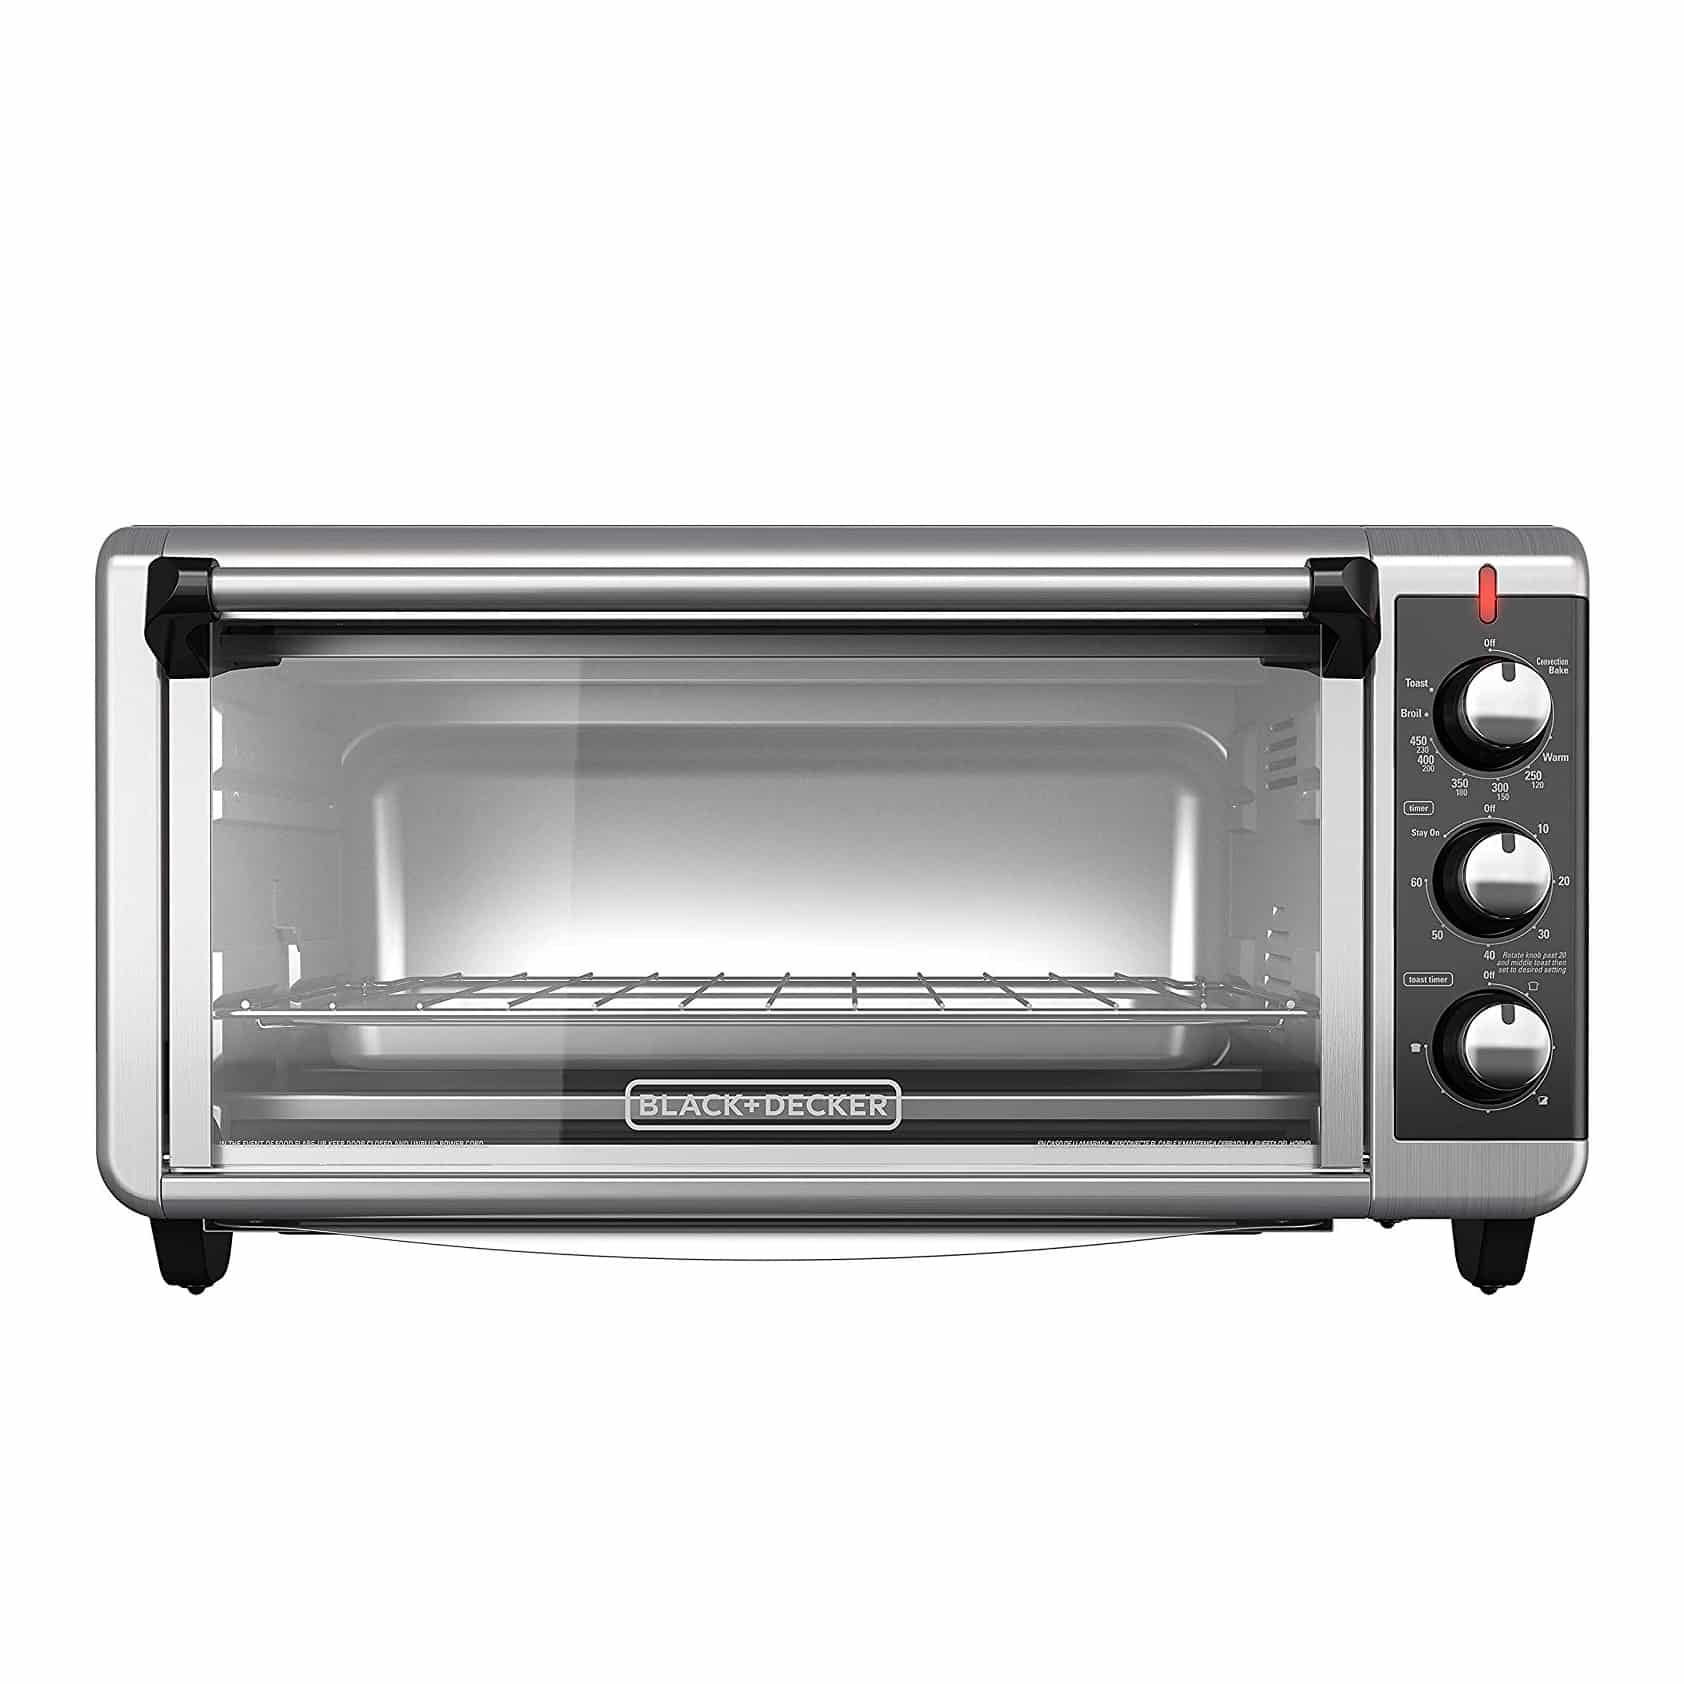 BLACK+DECKER 8-Slice Countertop Oven